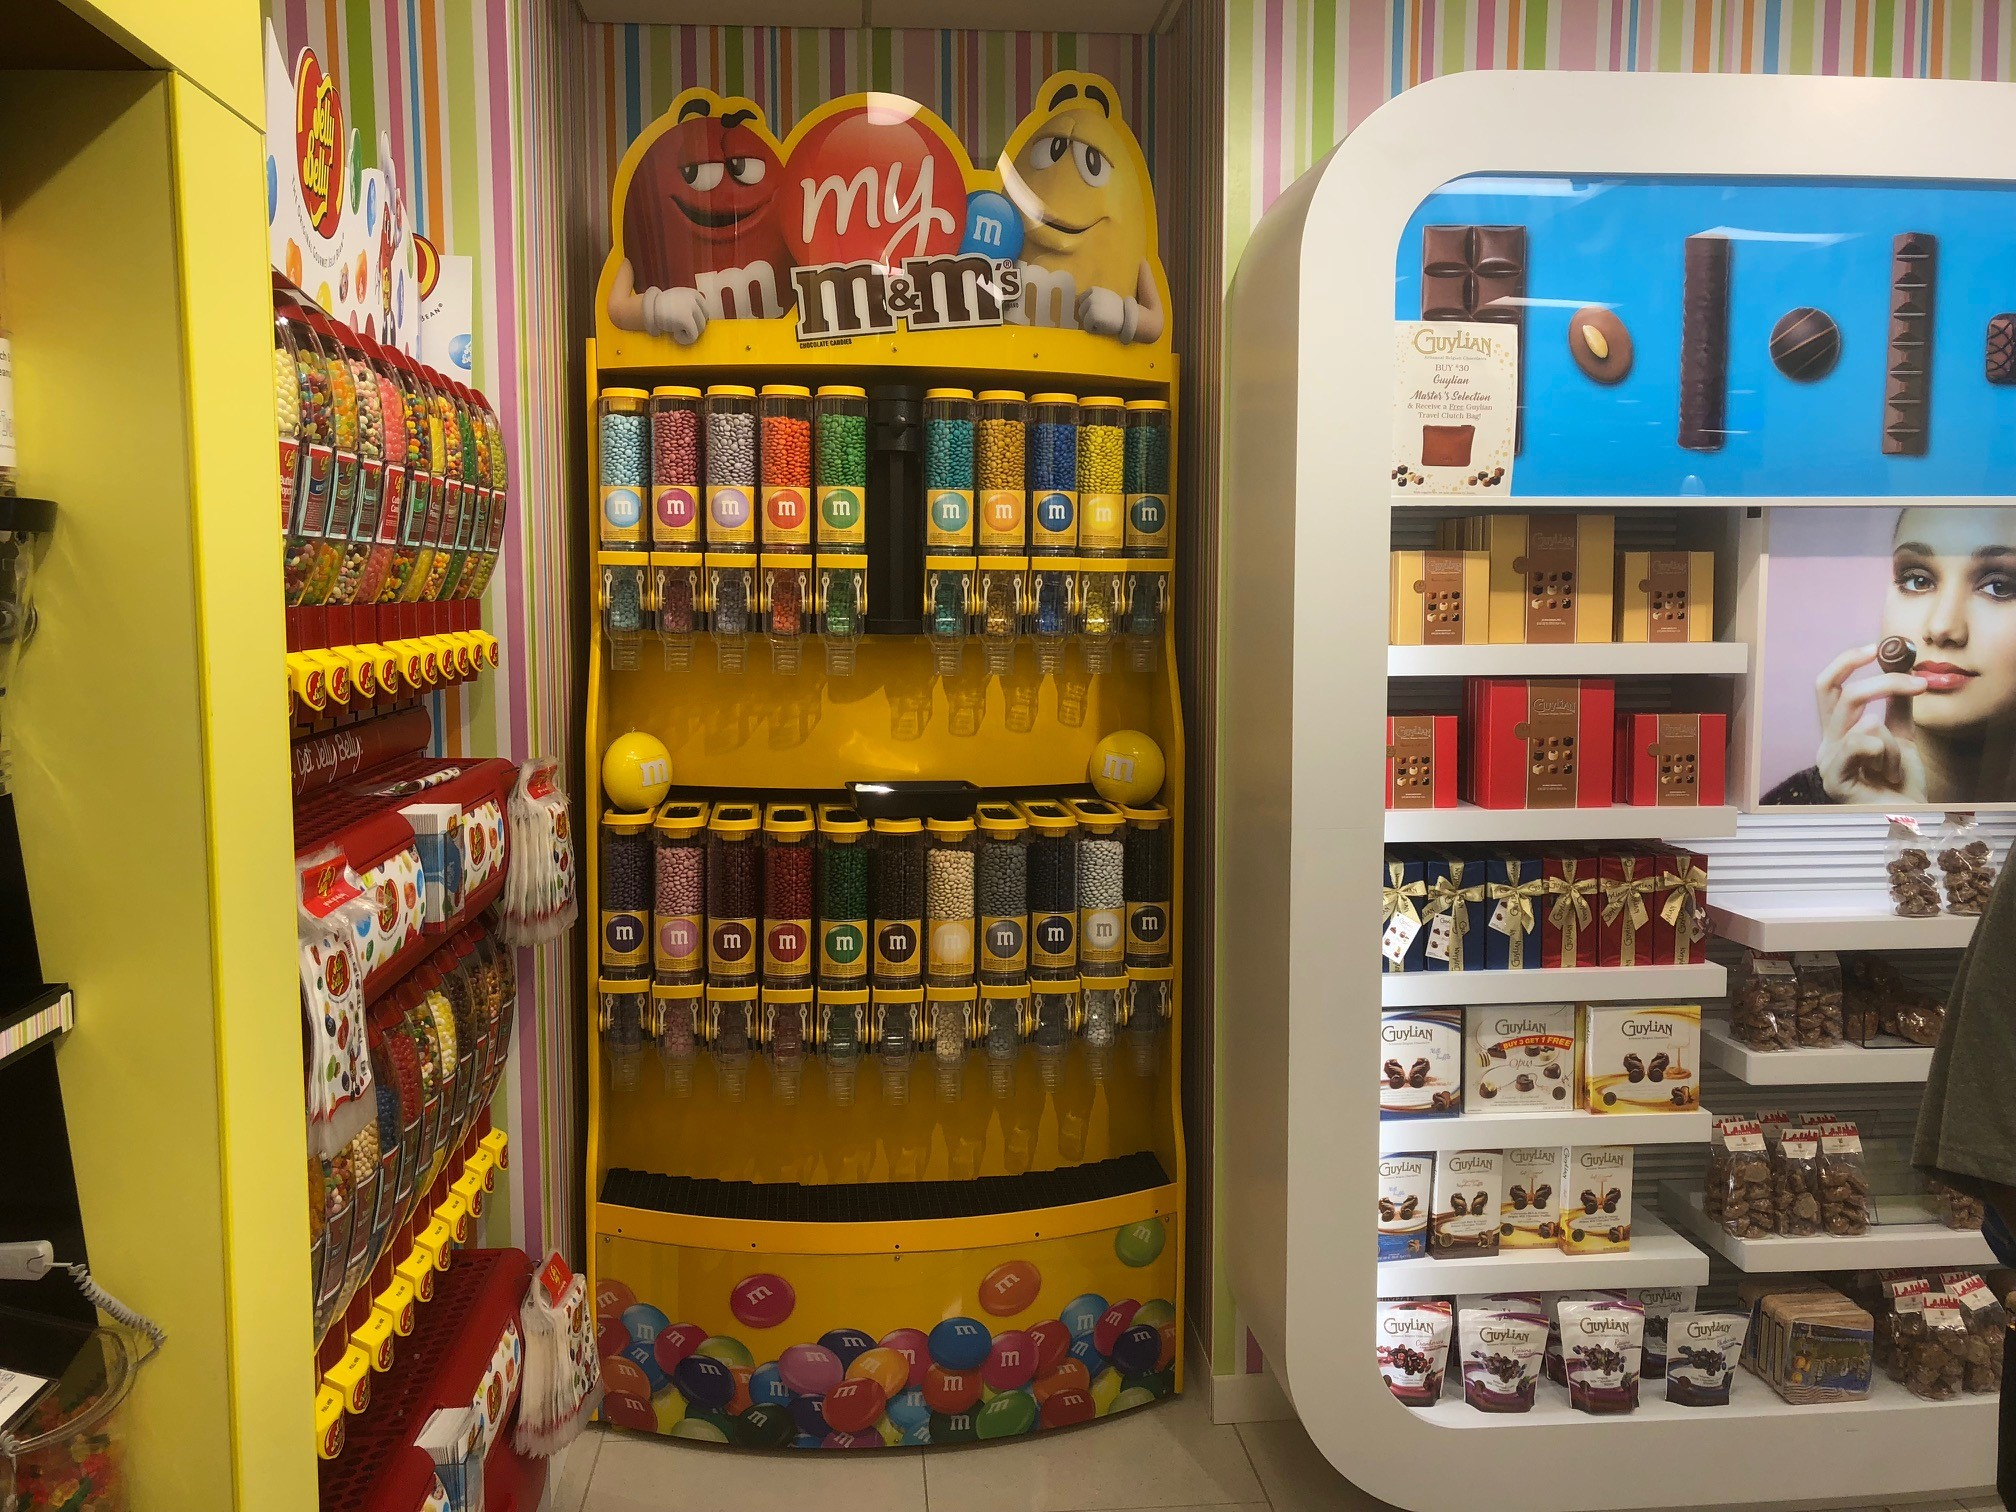 Captivating Retail Displays for Iconic Brands, from M&M® to Jelly Belly®